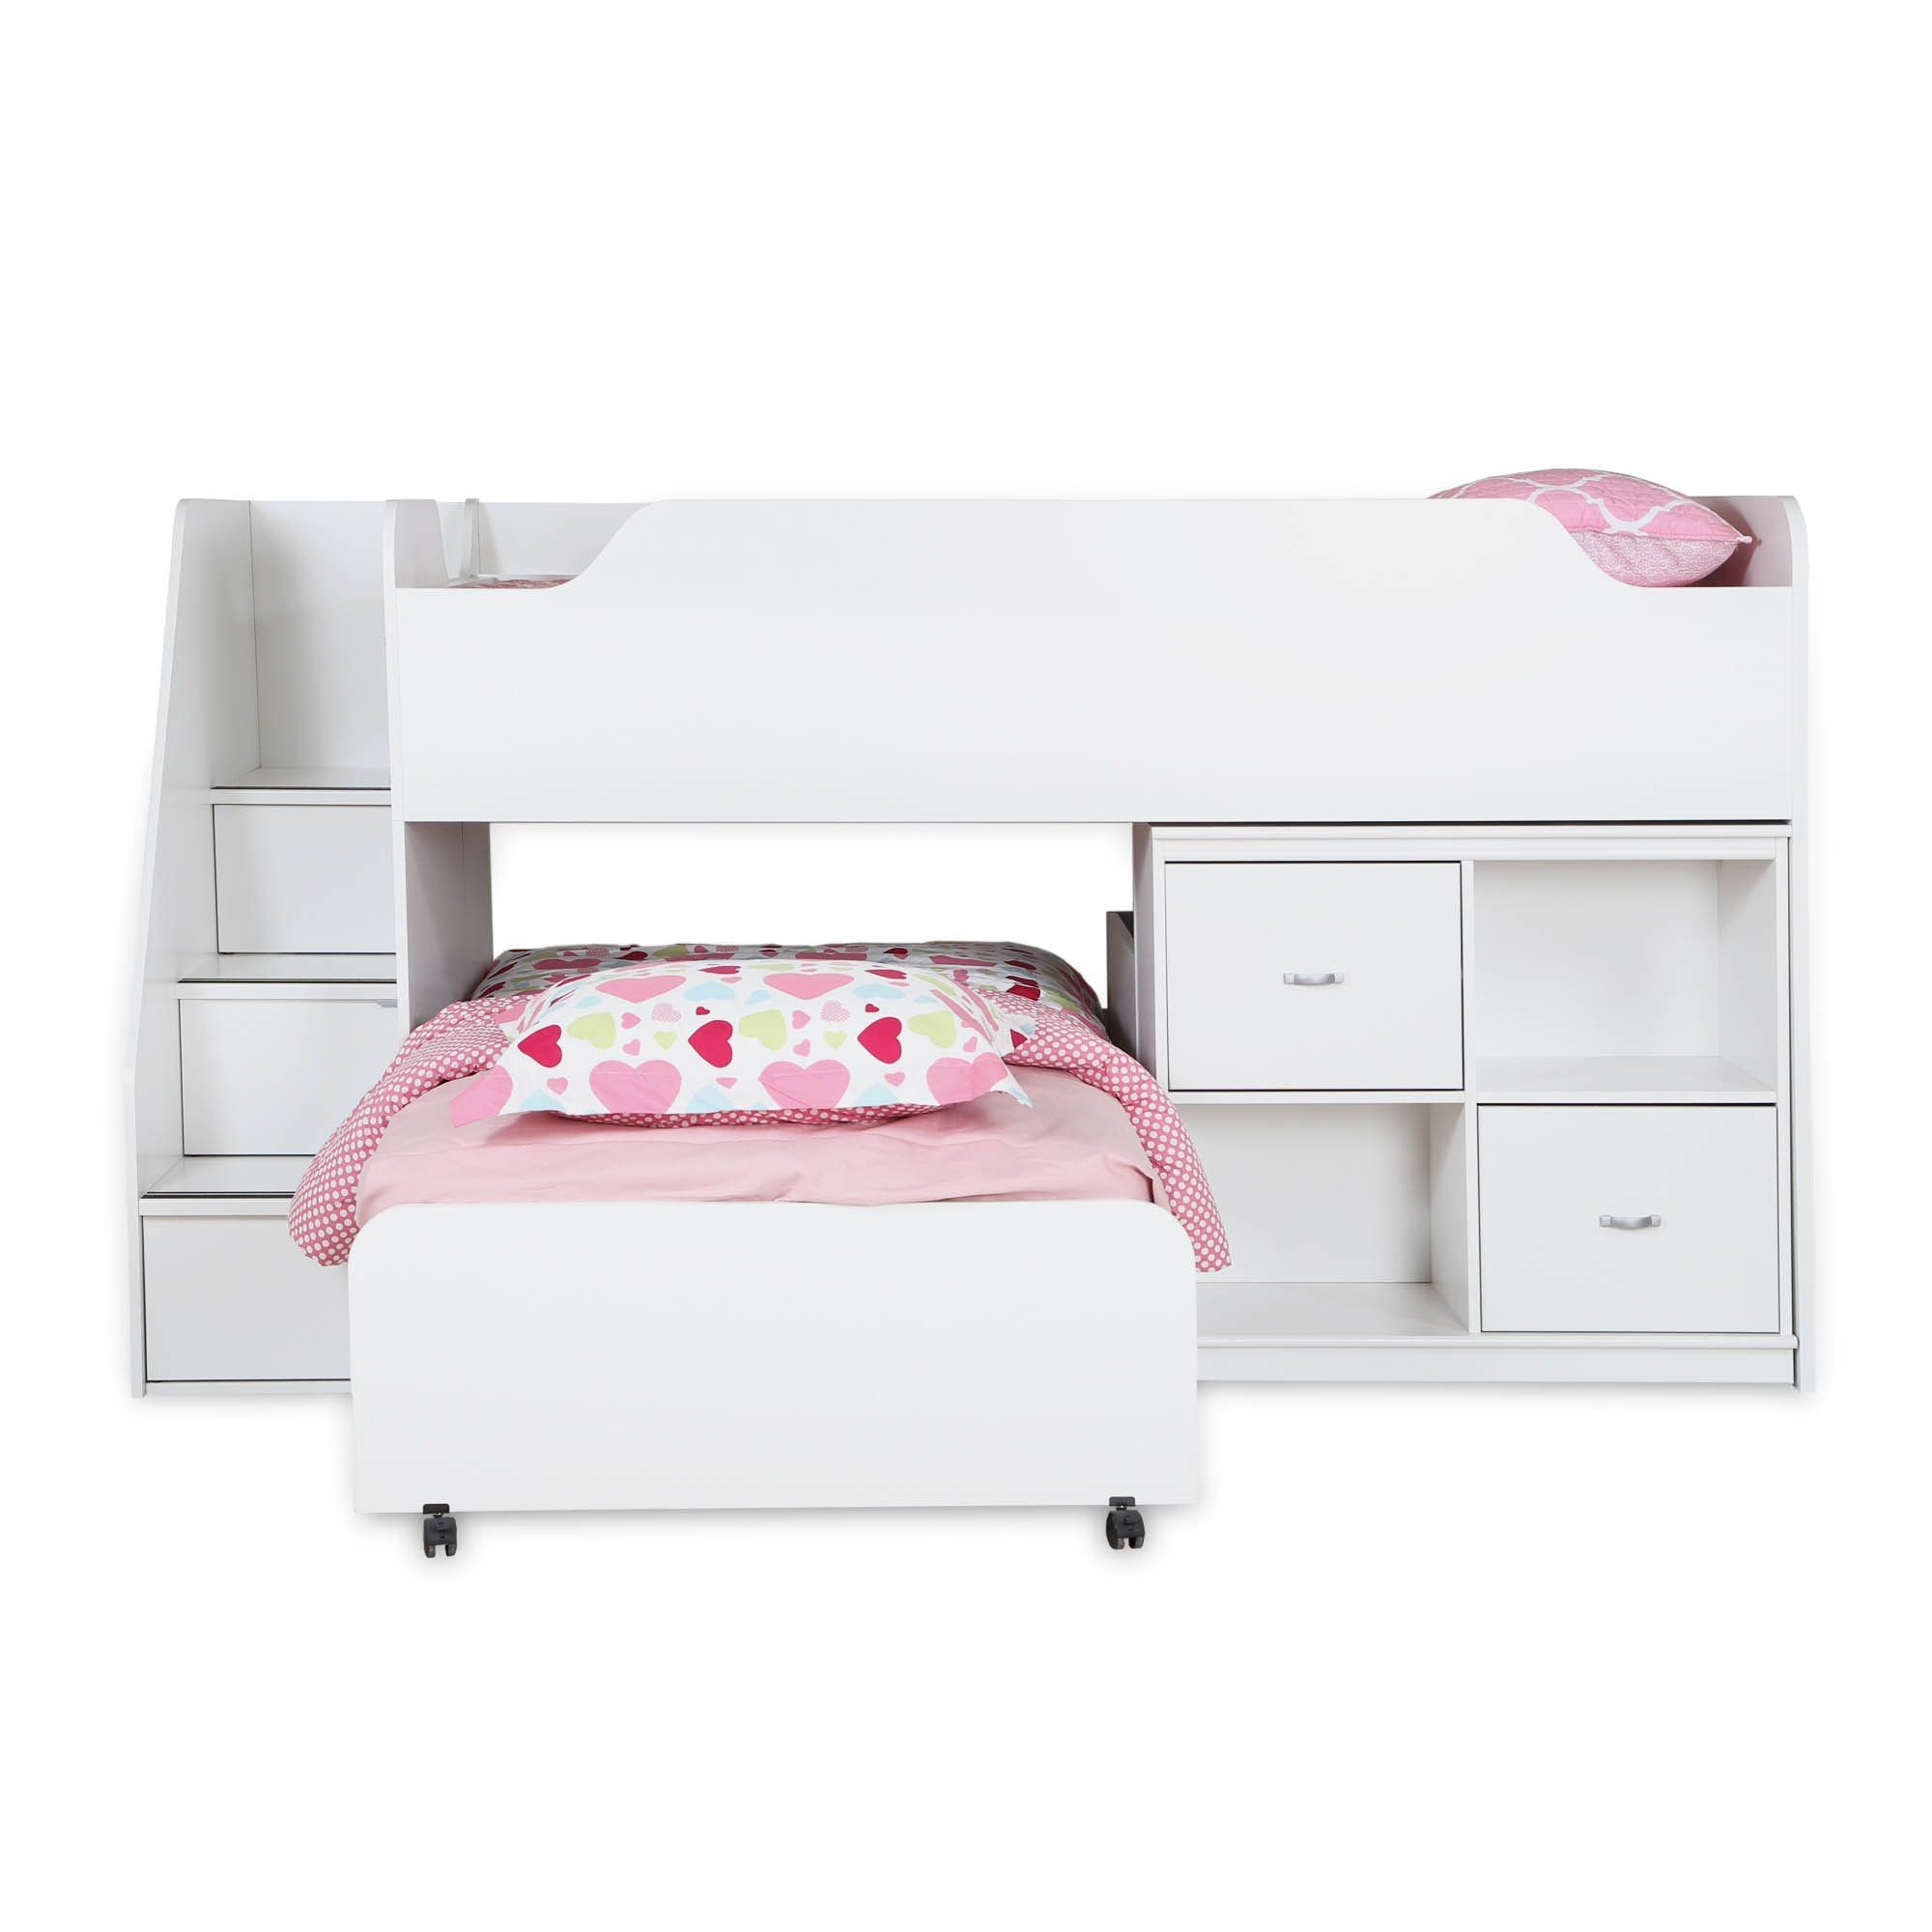 Mobby loft bed with stairs  South Shore Mobby Twin Loft Bed with Trundle and Storage Unit Pure